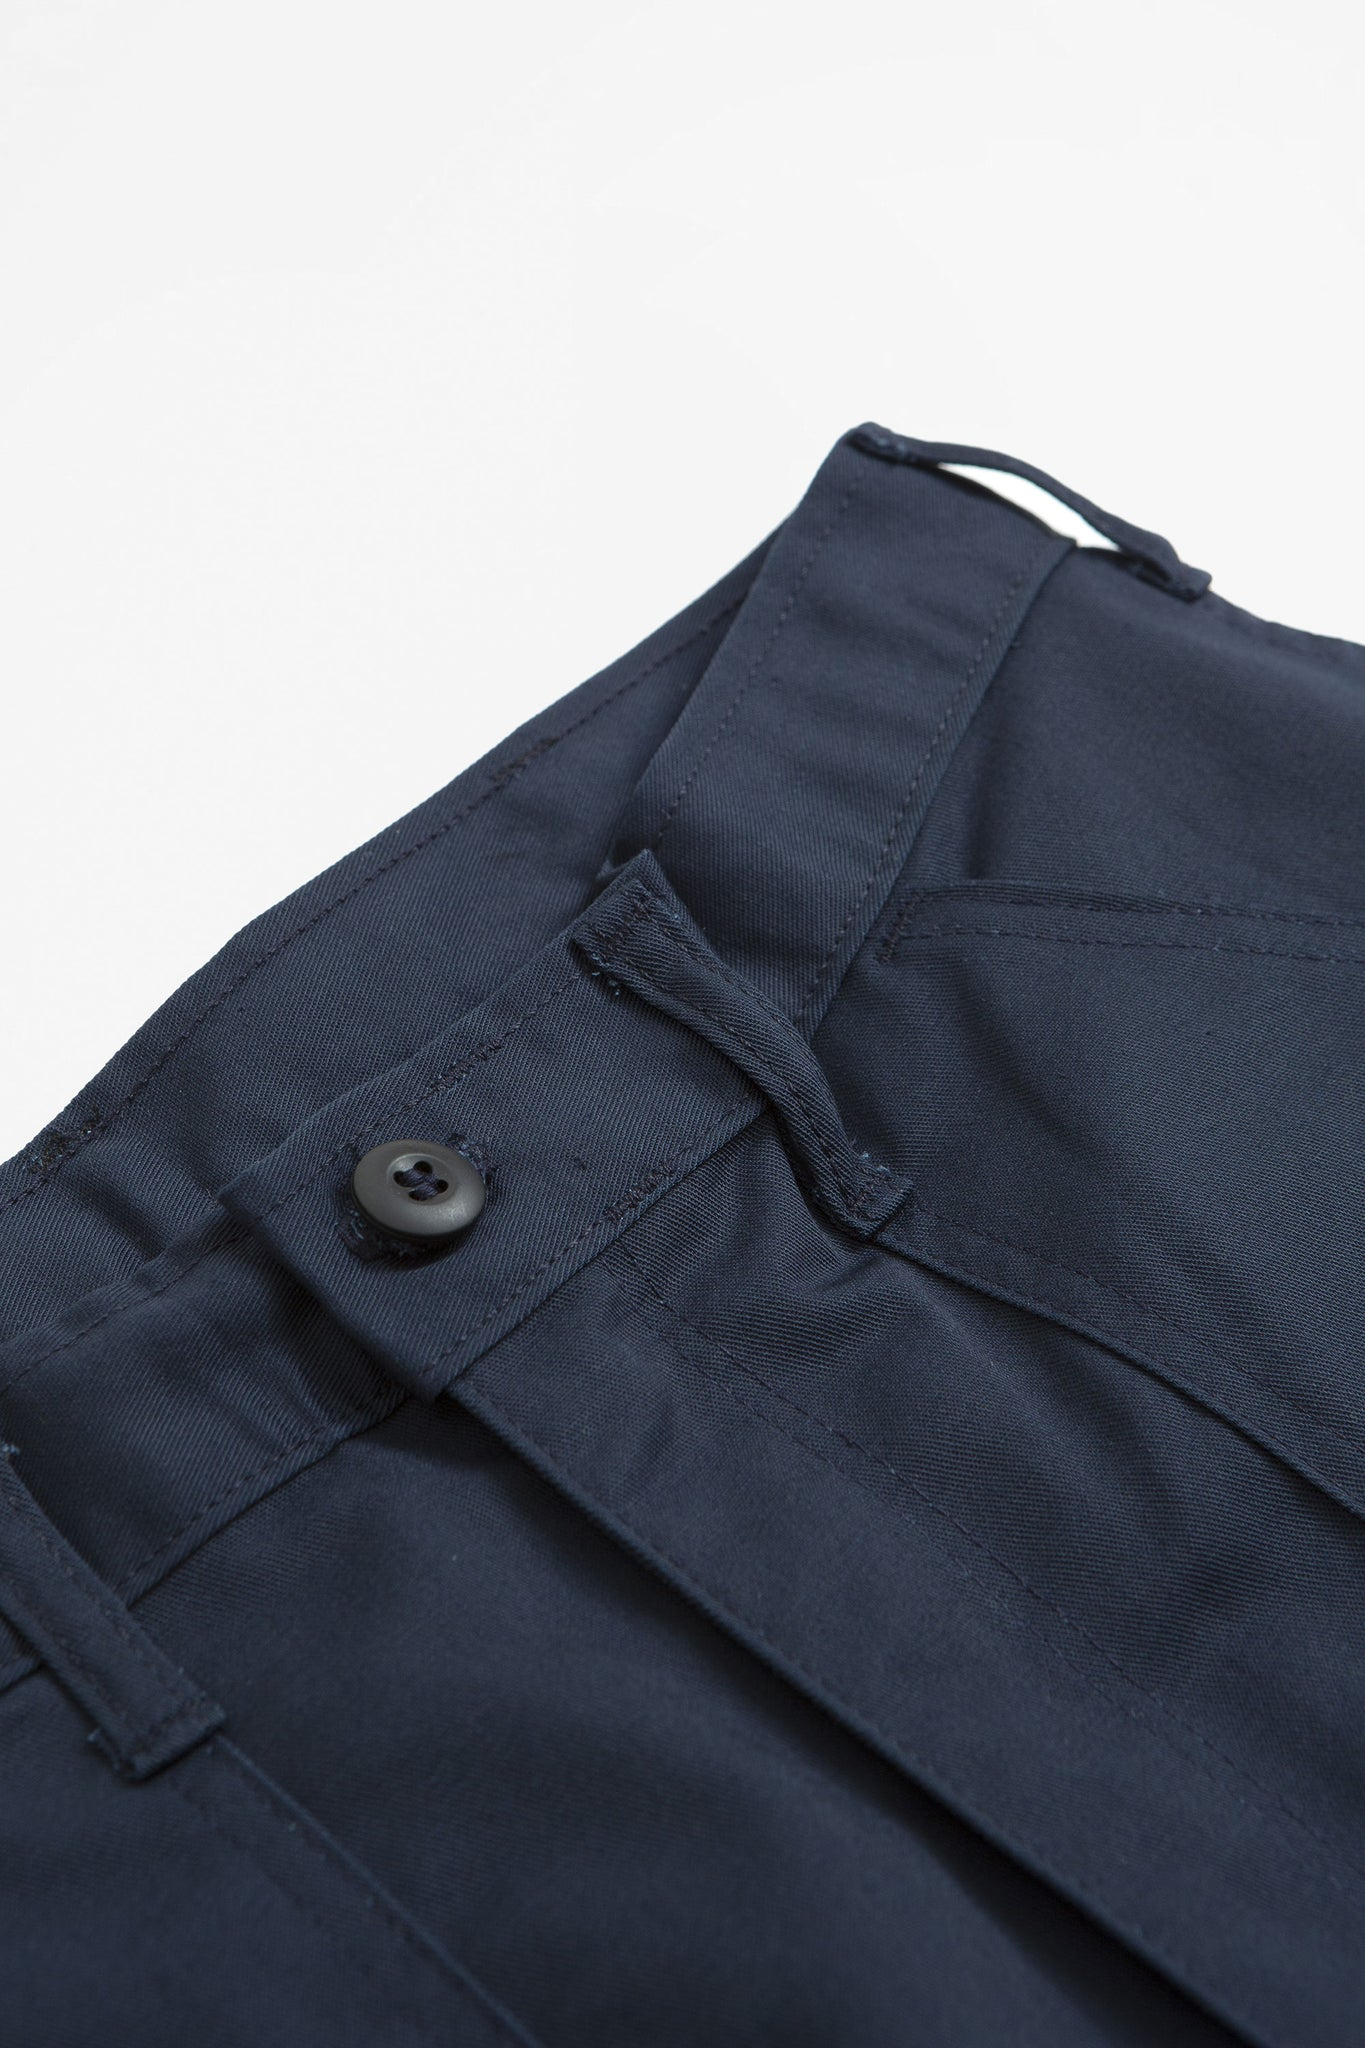 Taper fatigue trousers navy twill